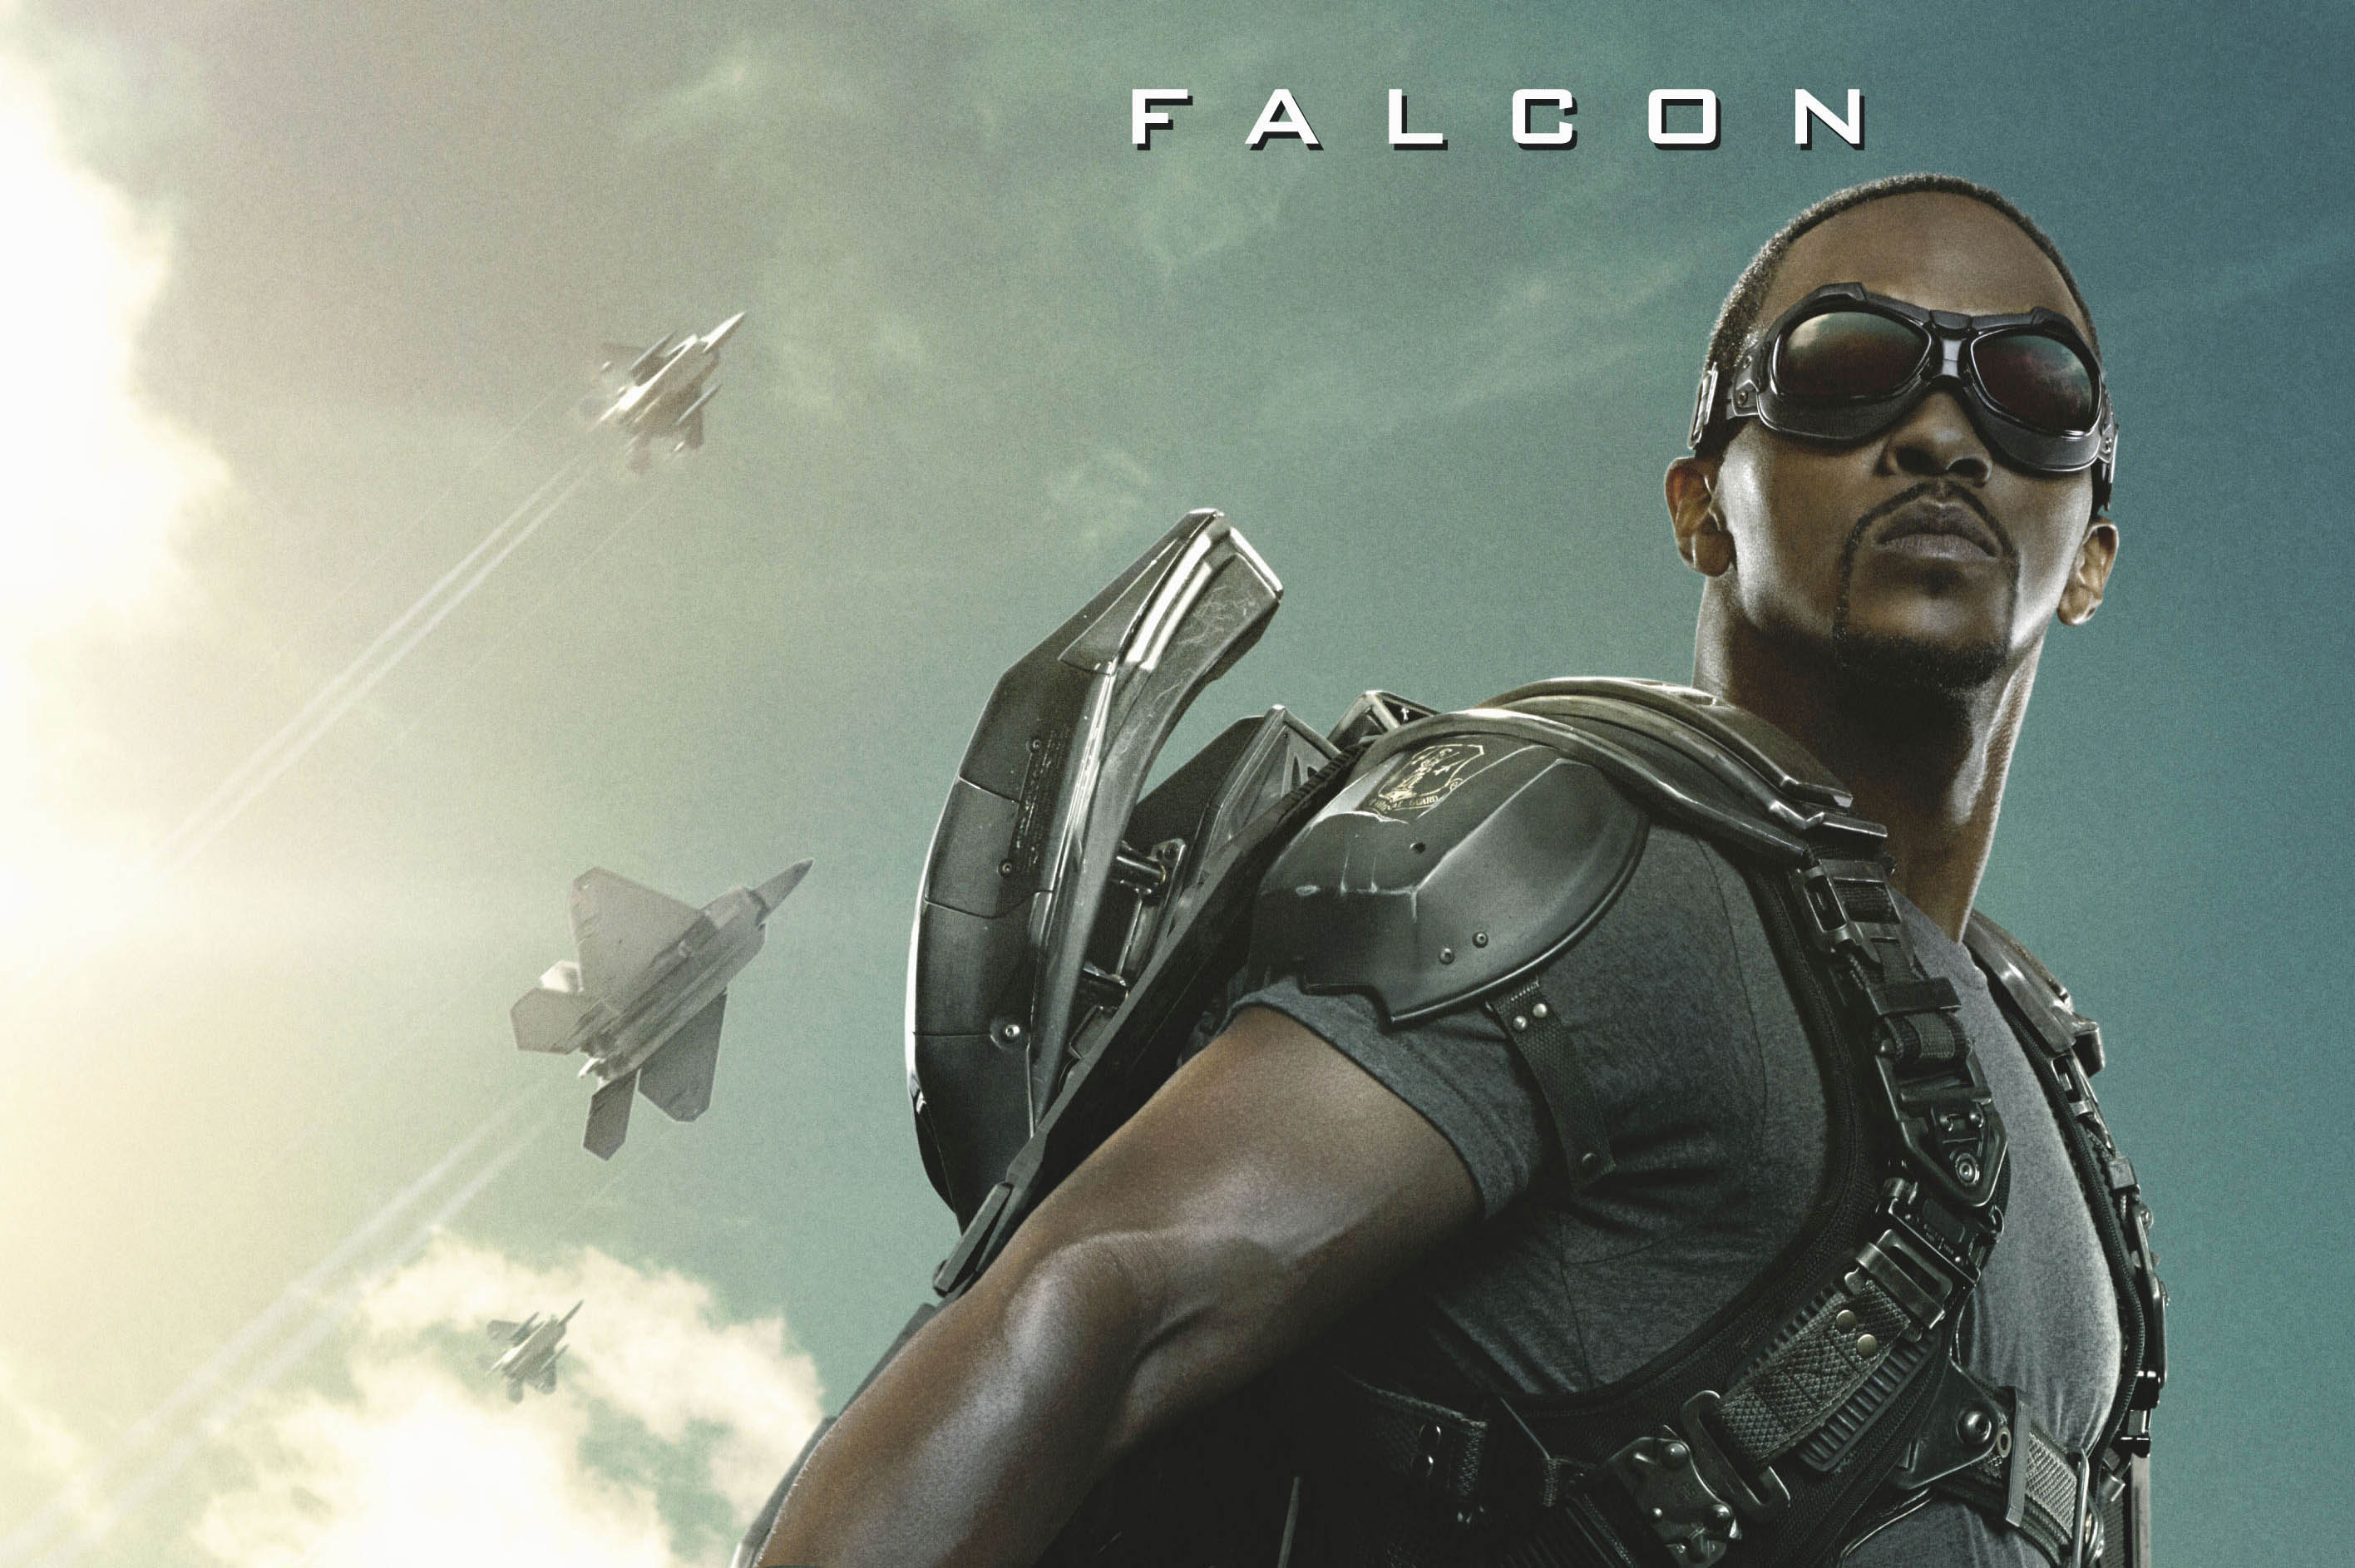 Falcon Soars in Marvel's Captain America: The Winter Soldier